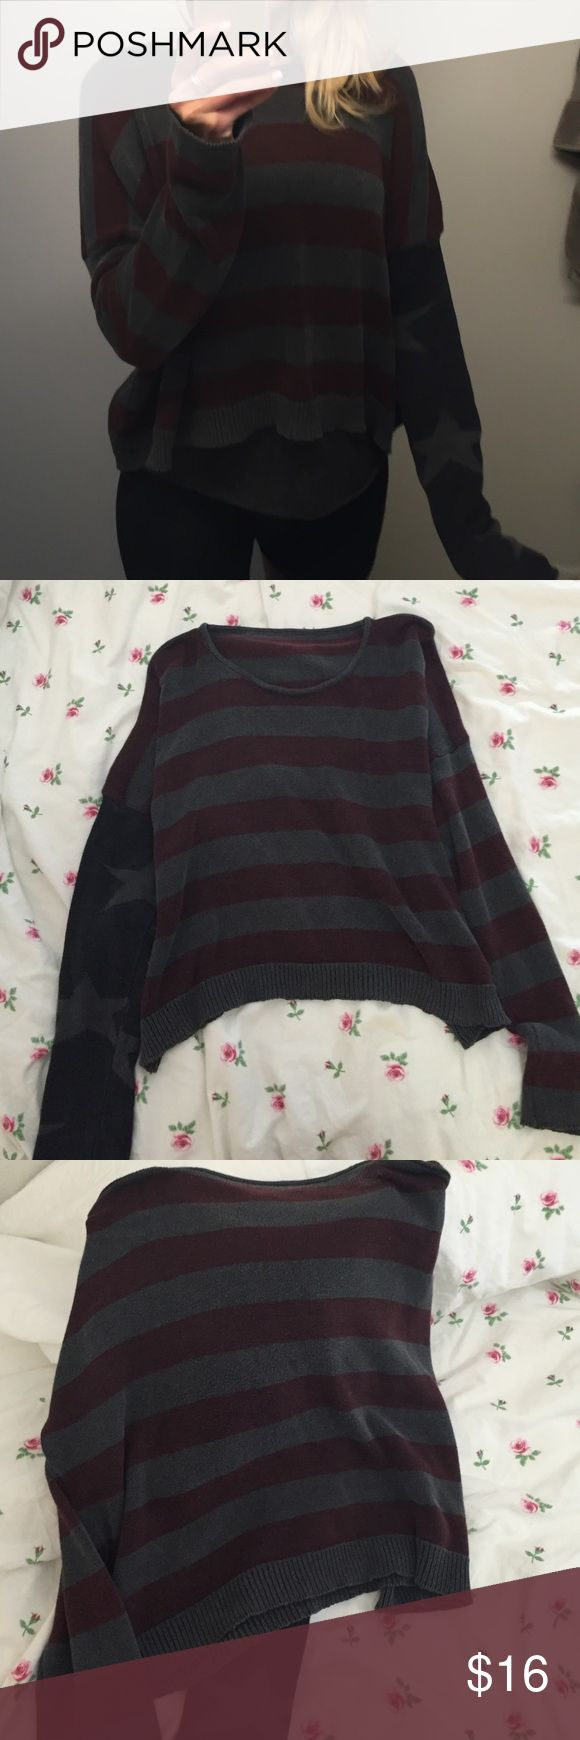 Brandy Melville sweater Authentic brandy Melville sweater with American flag design of Stars and Stripes. In good used condition. One small spot on the backside, hardly noticeable when wearing and may come out in the wash-not sure. Fits like a small. Brandy Melville Sweaters